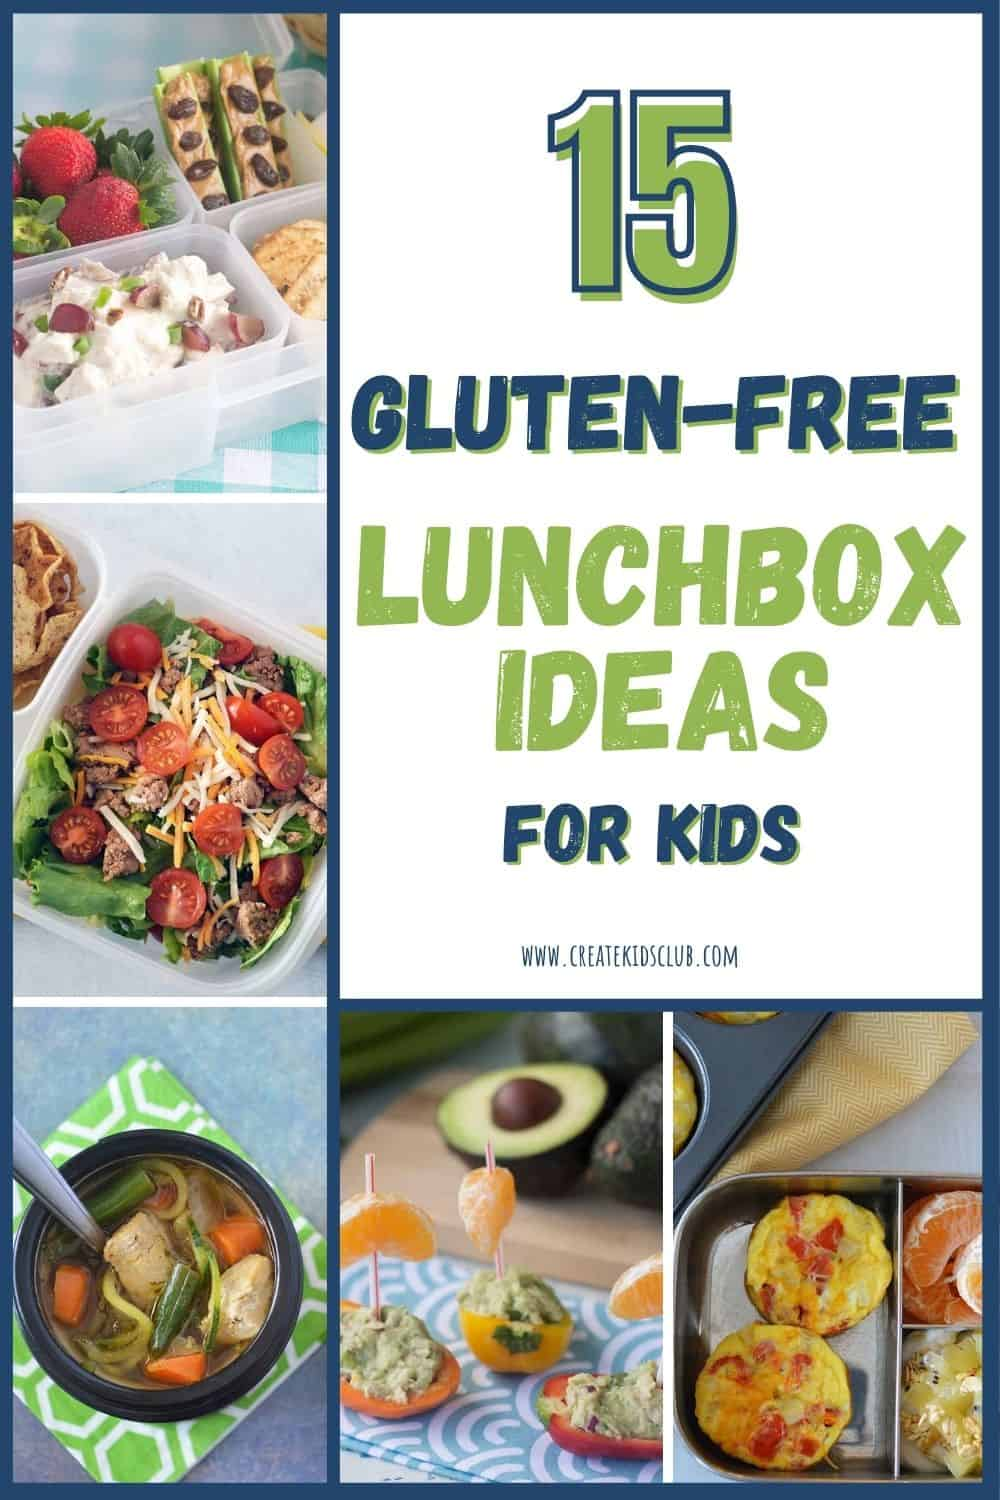 5 recipes showcasing gluten free lunch ideas in a round up of 15 recipes.